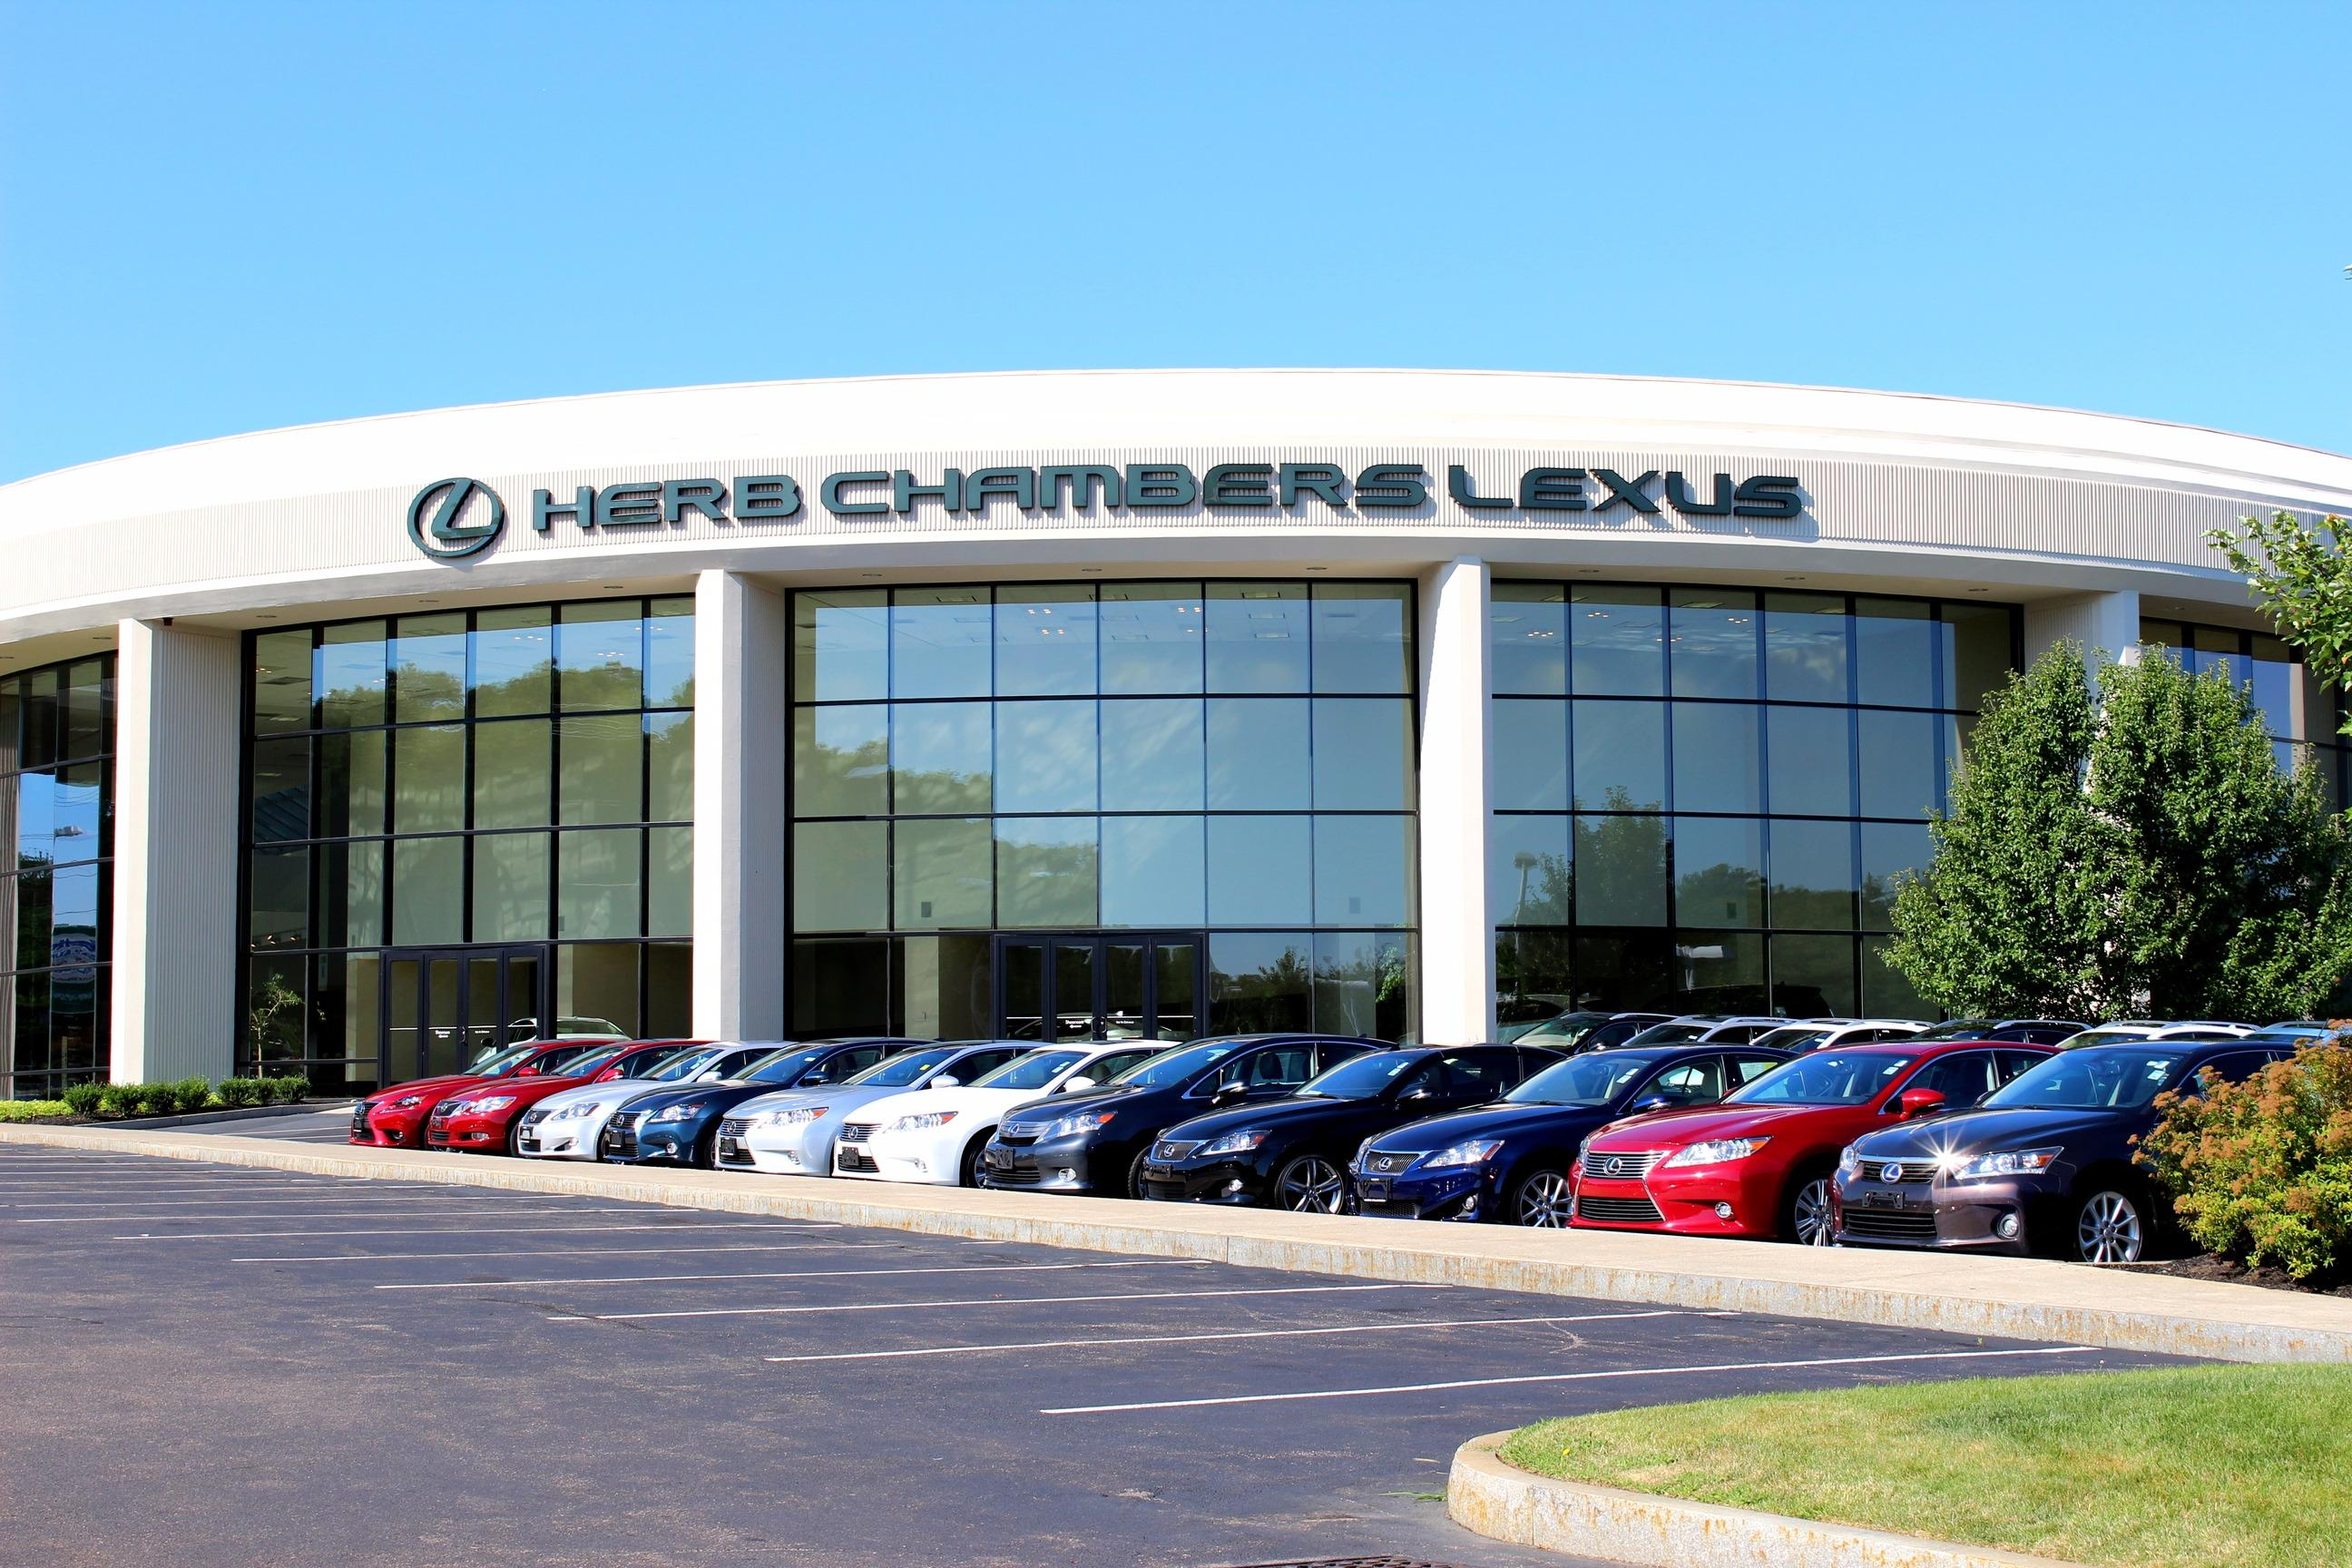 Los Angeles Lexus Service Coupons >> Herb Chambers Lexus Coupons near me in Sharon | 8coupons